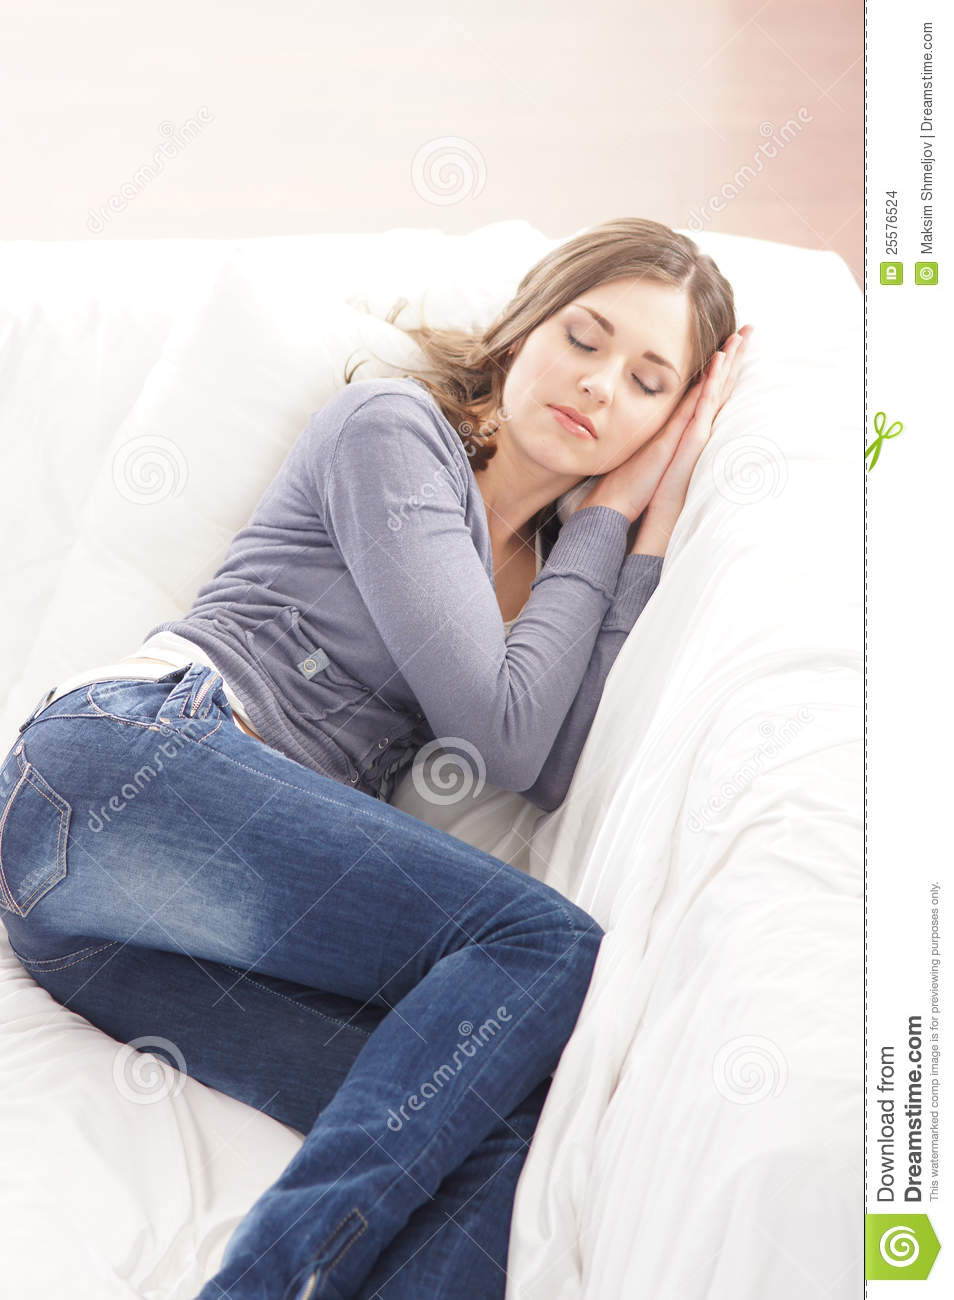 A Young Brunette Caucasian Woman Sleeping In Jeans Stock